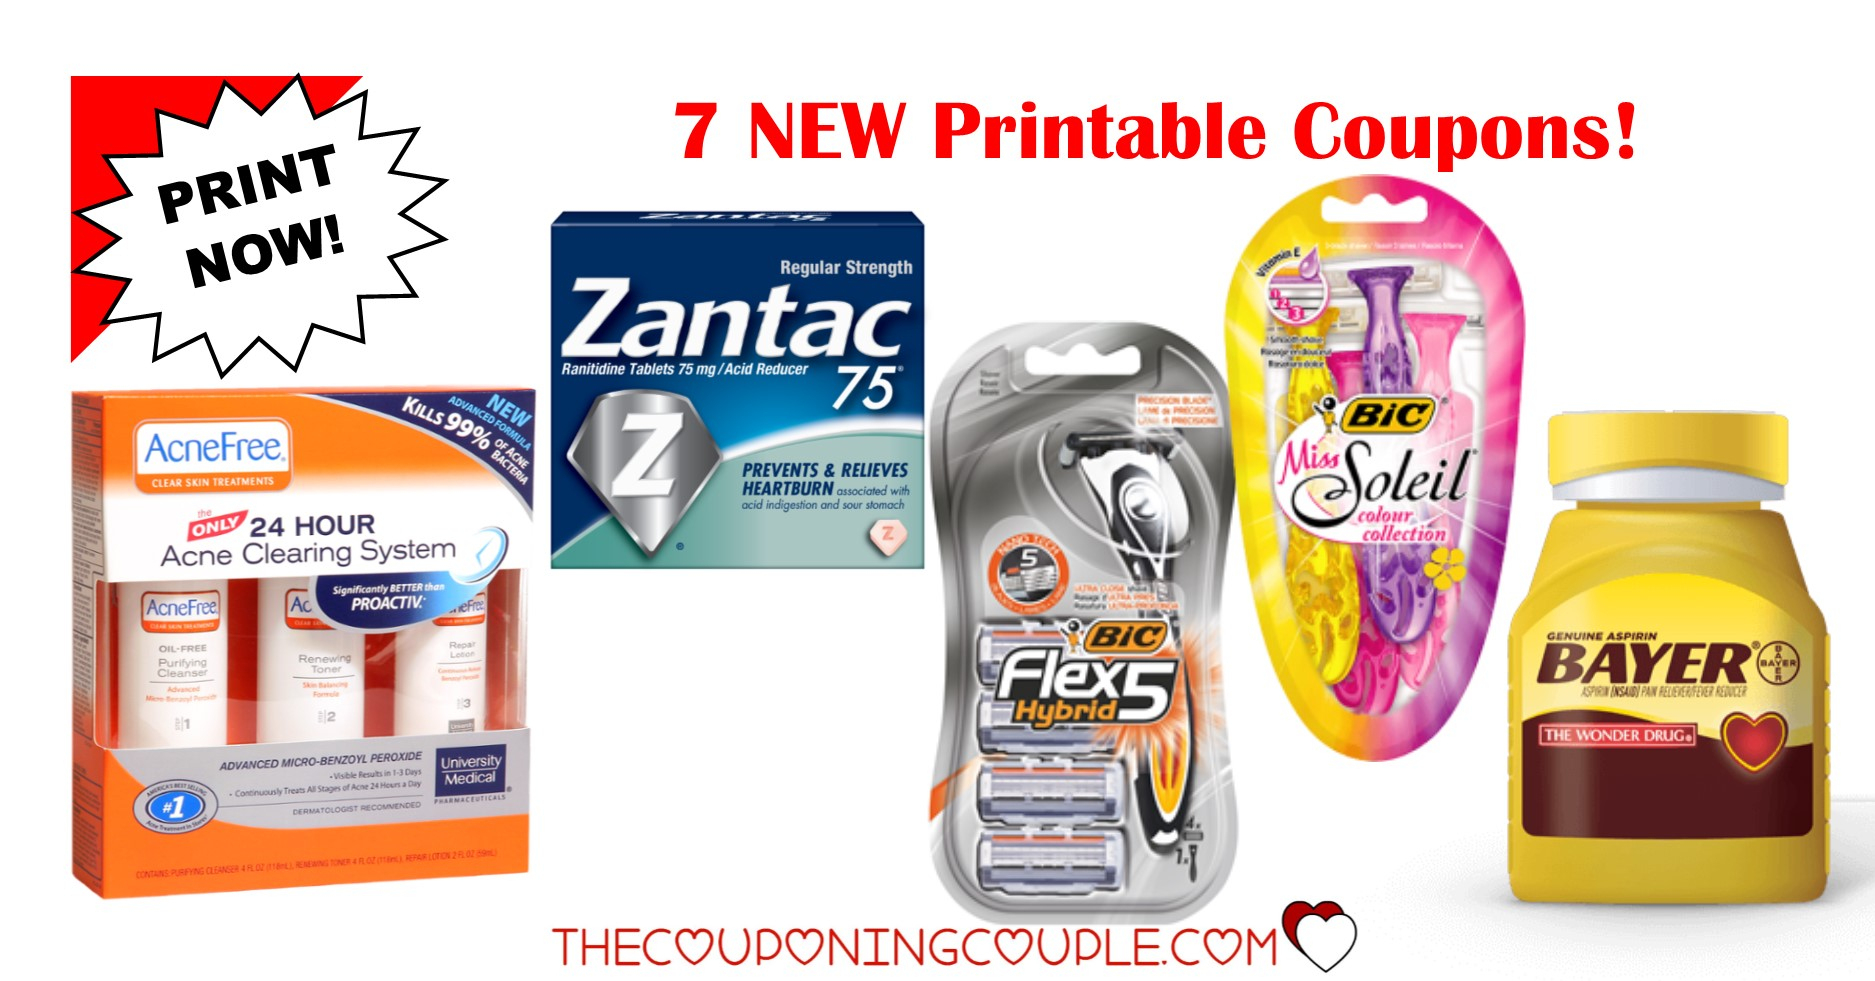 7 New Printable Coupons ~ $21 In Savings! Print Now! - Acne Free Coupons Printable